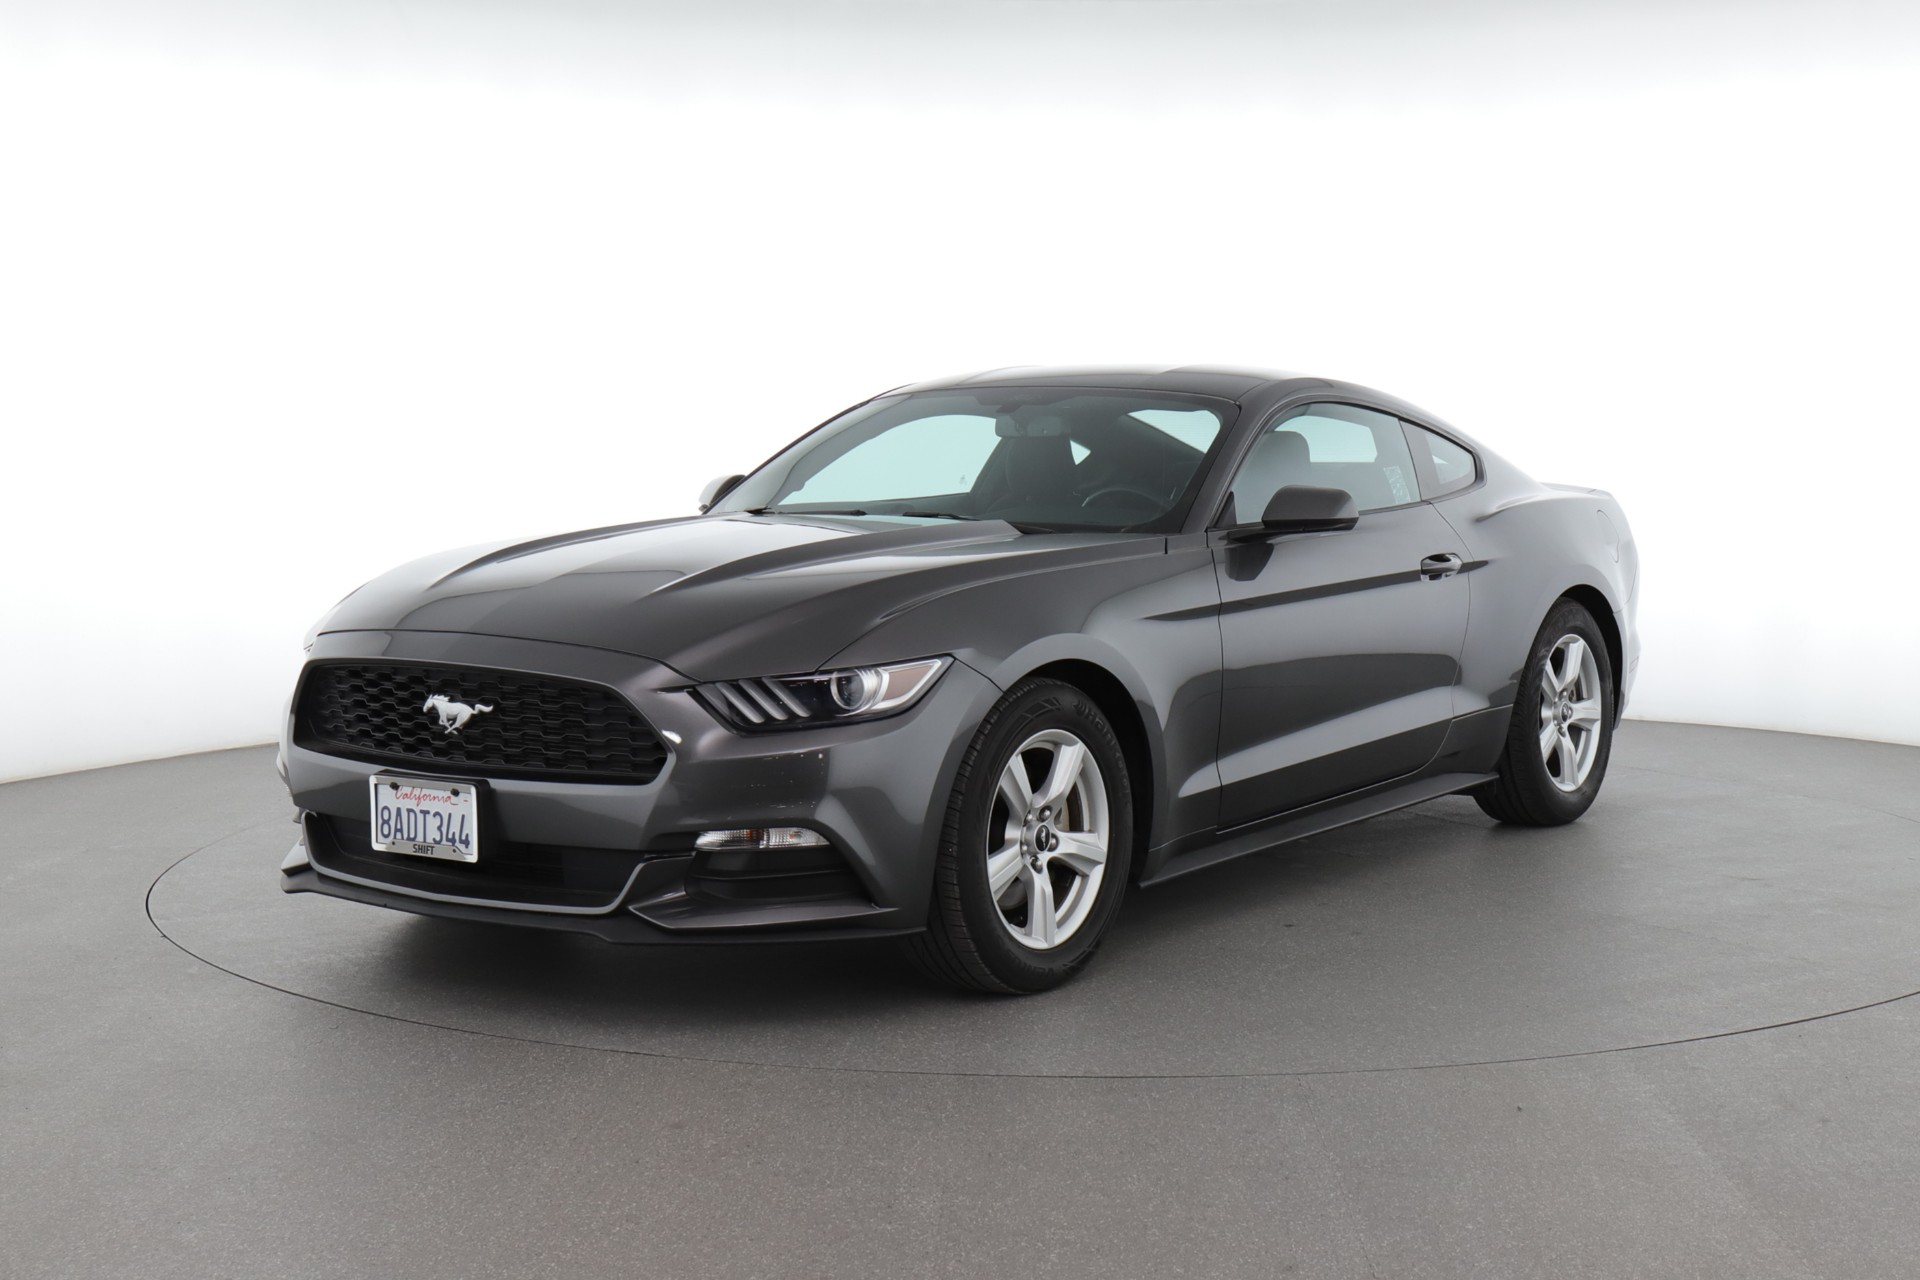 The Ford Mustang V6